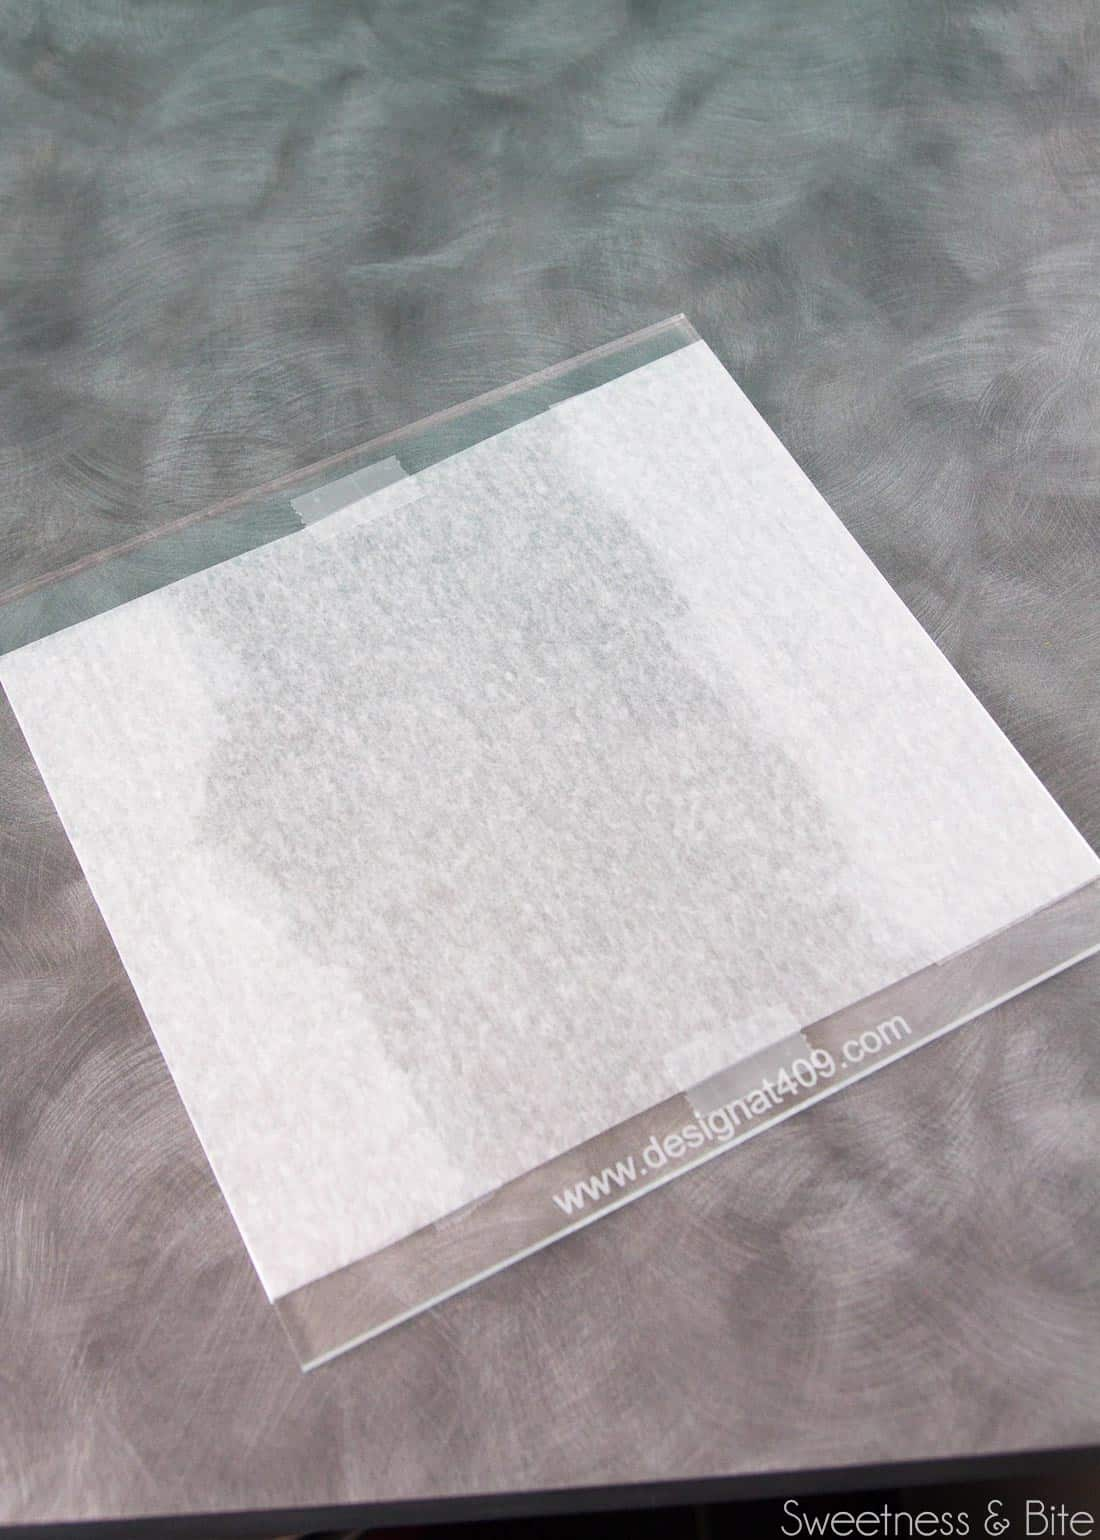 A clear acrylic cake board with a piece of waxed paper taped to it.